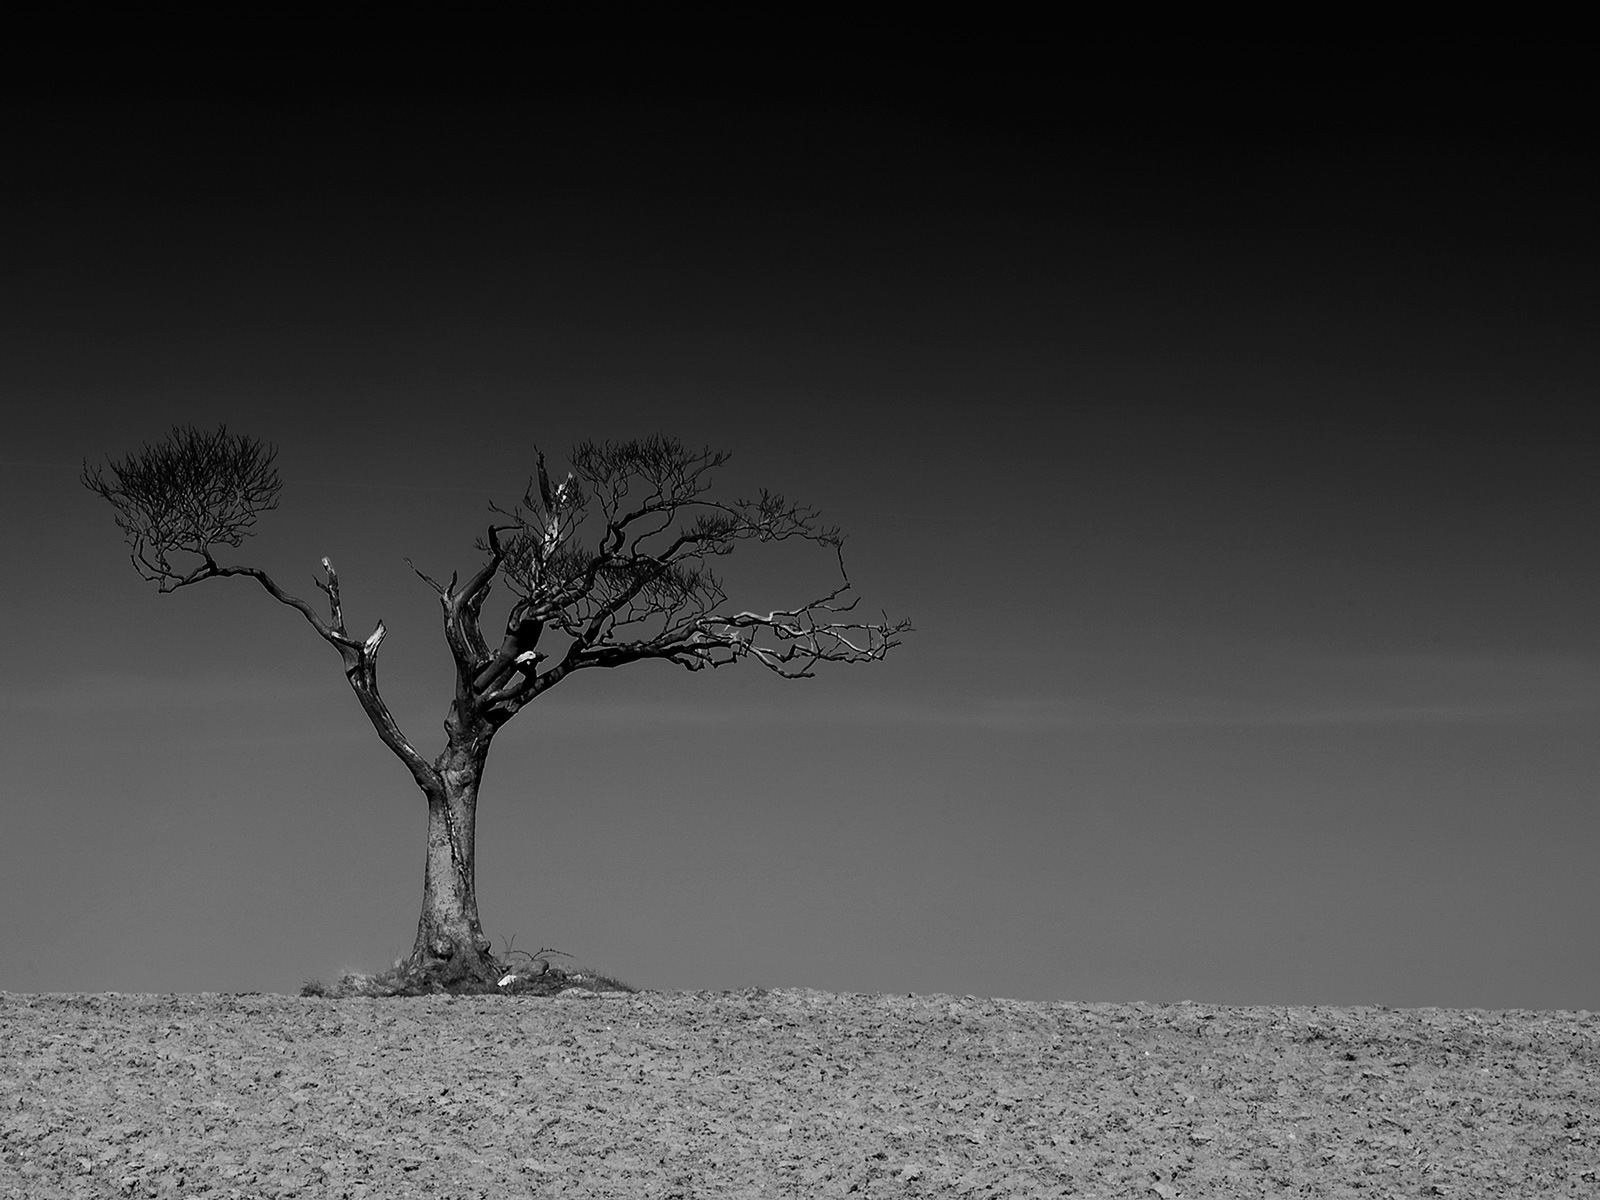 Fine Art Tree Photography by Geoff McGrath, Helens Bay, Co.Down, Northern Ireland